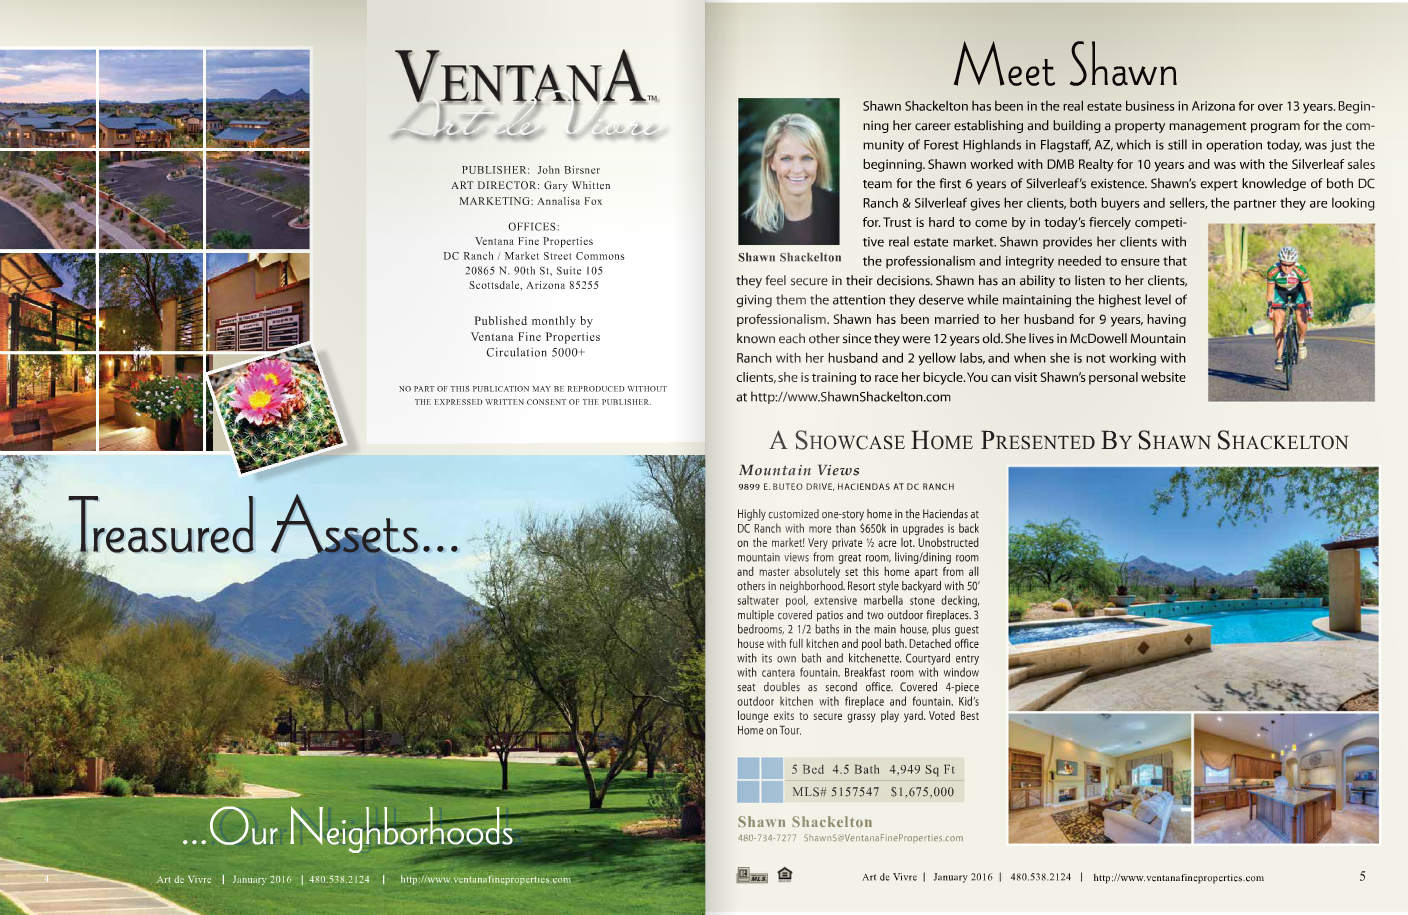 Ventana Fine Properties: Art de Vivre January 2016